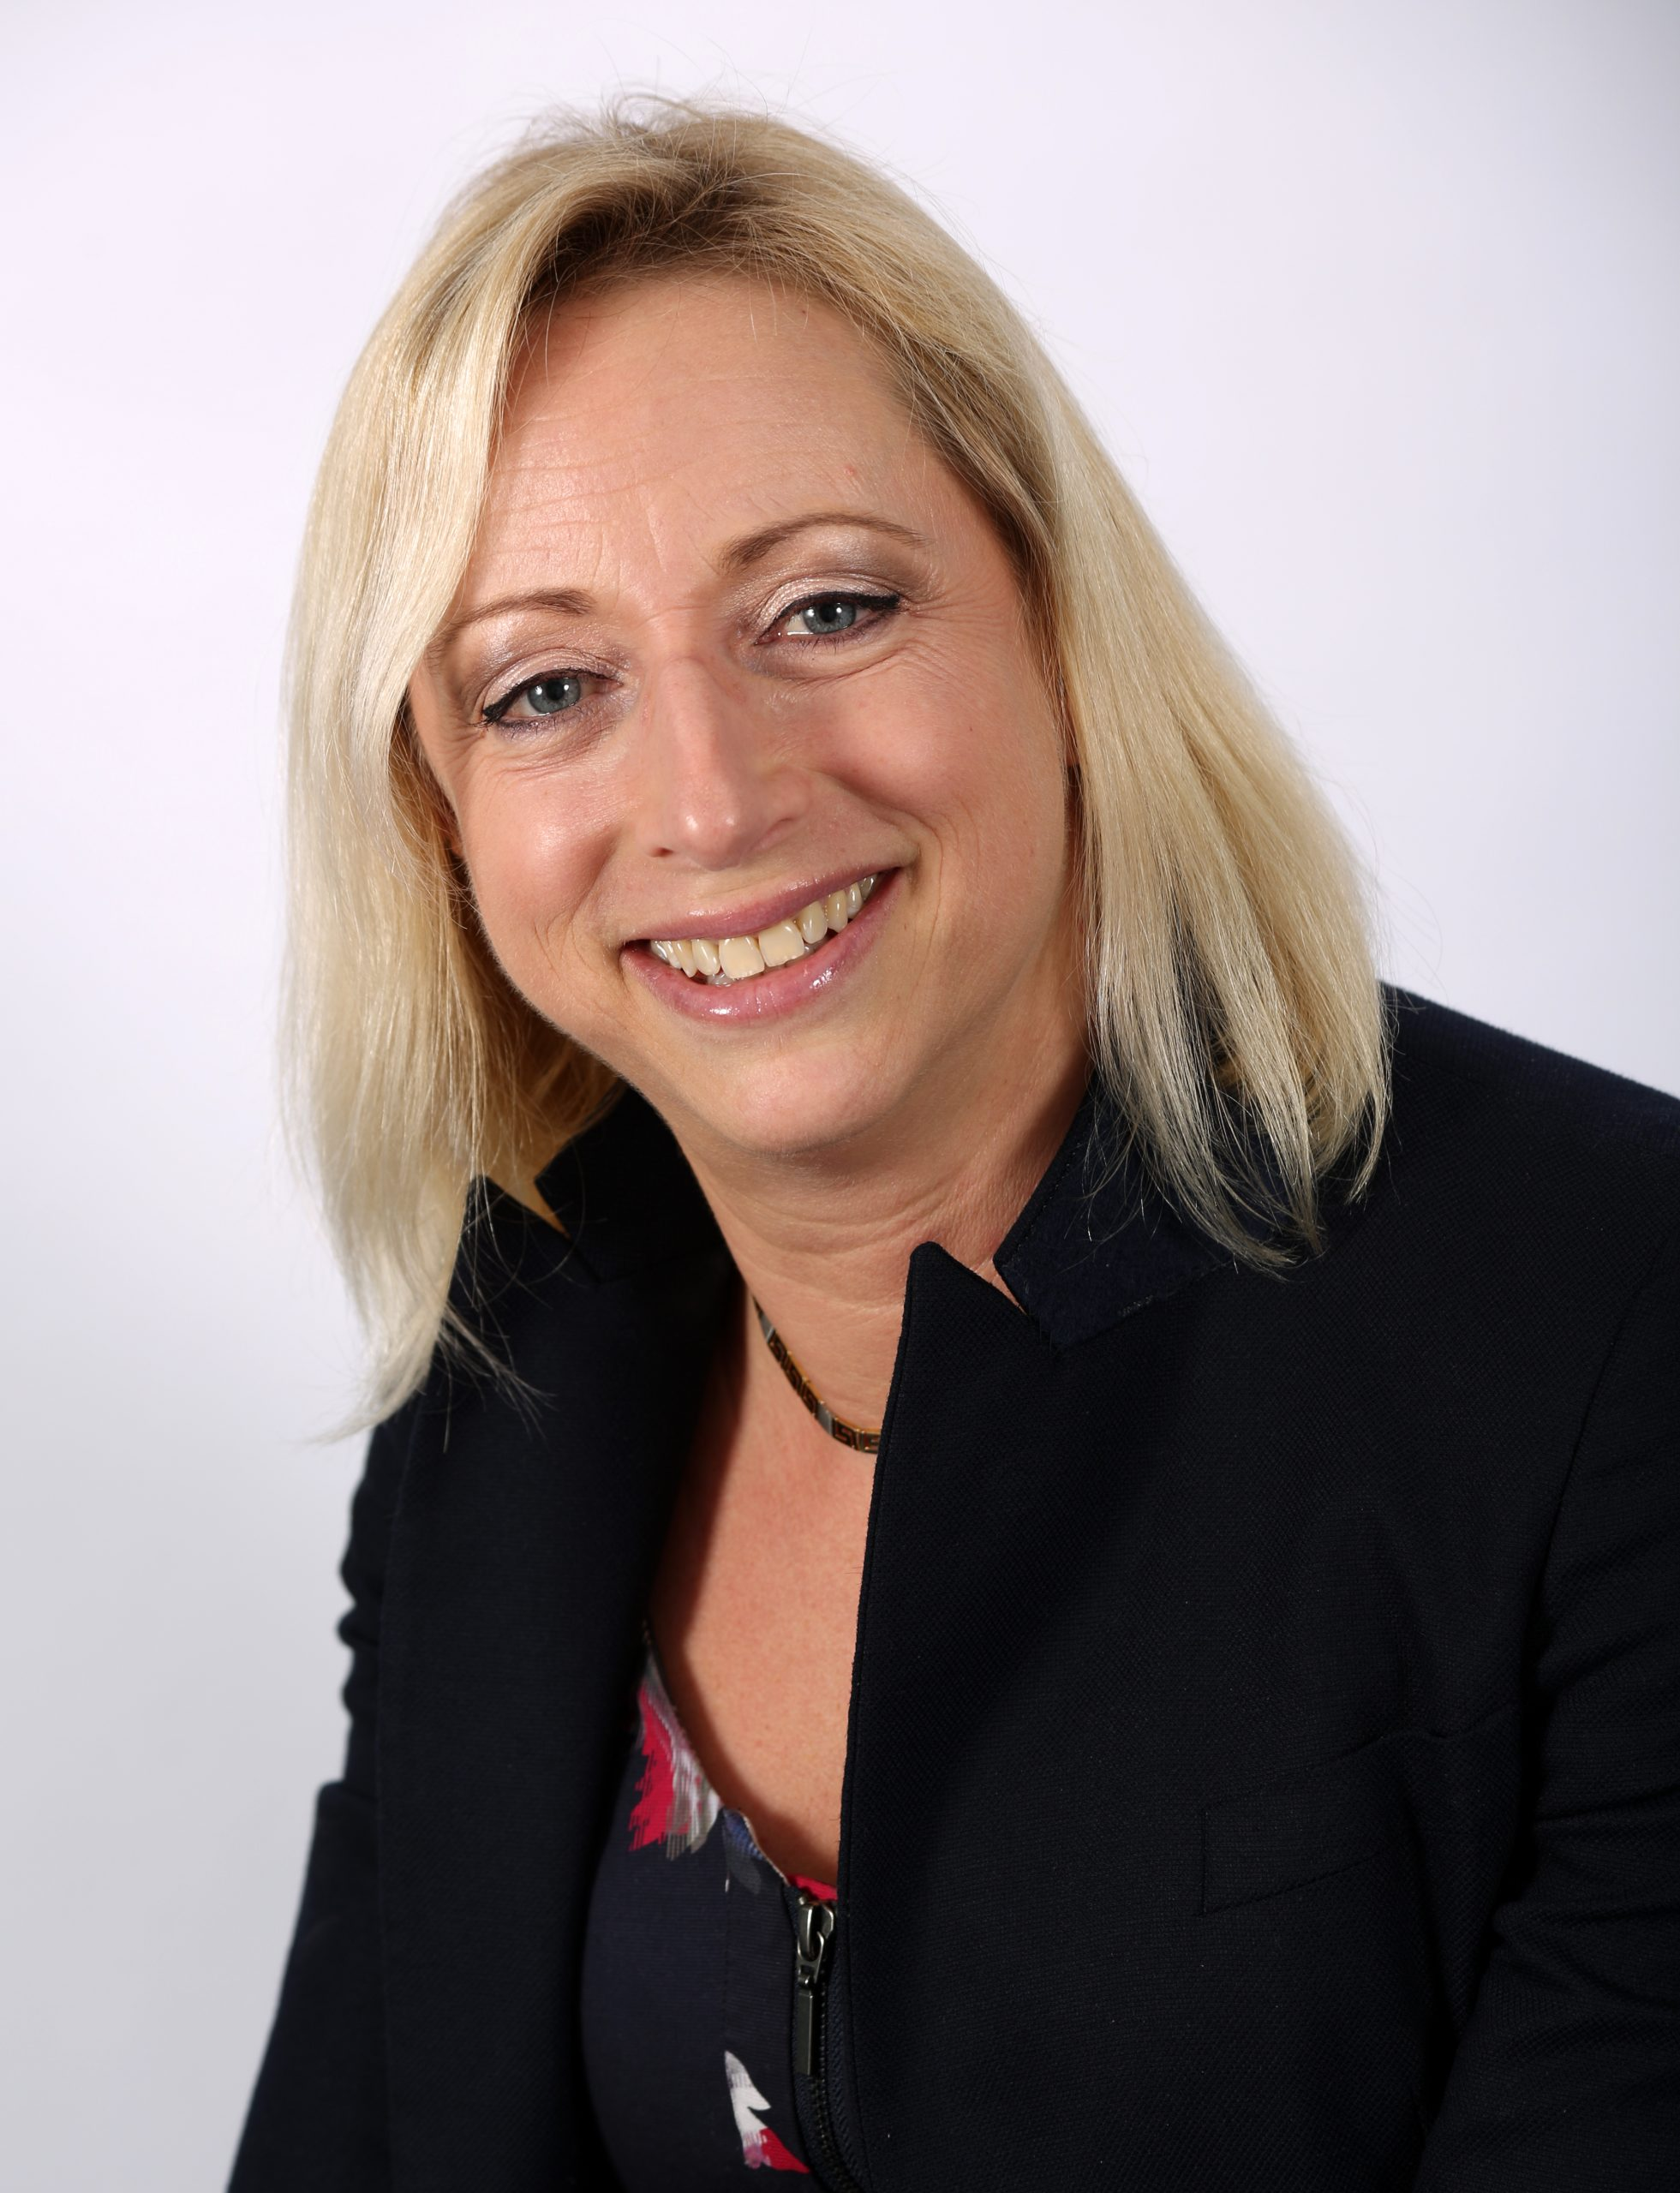 CompTIA names Tracy Pound its Member of the Year